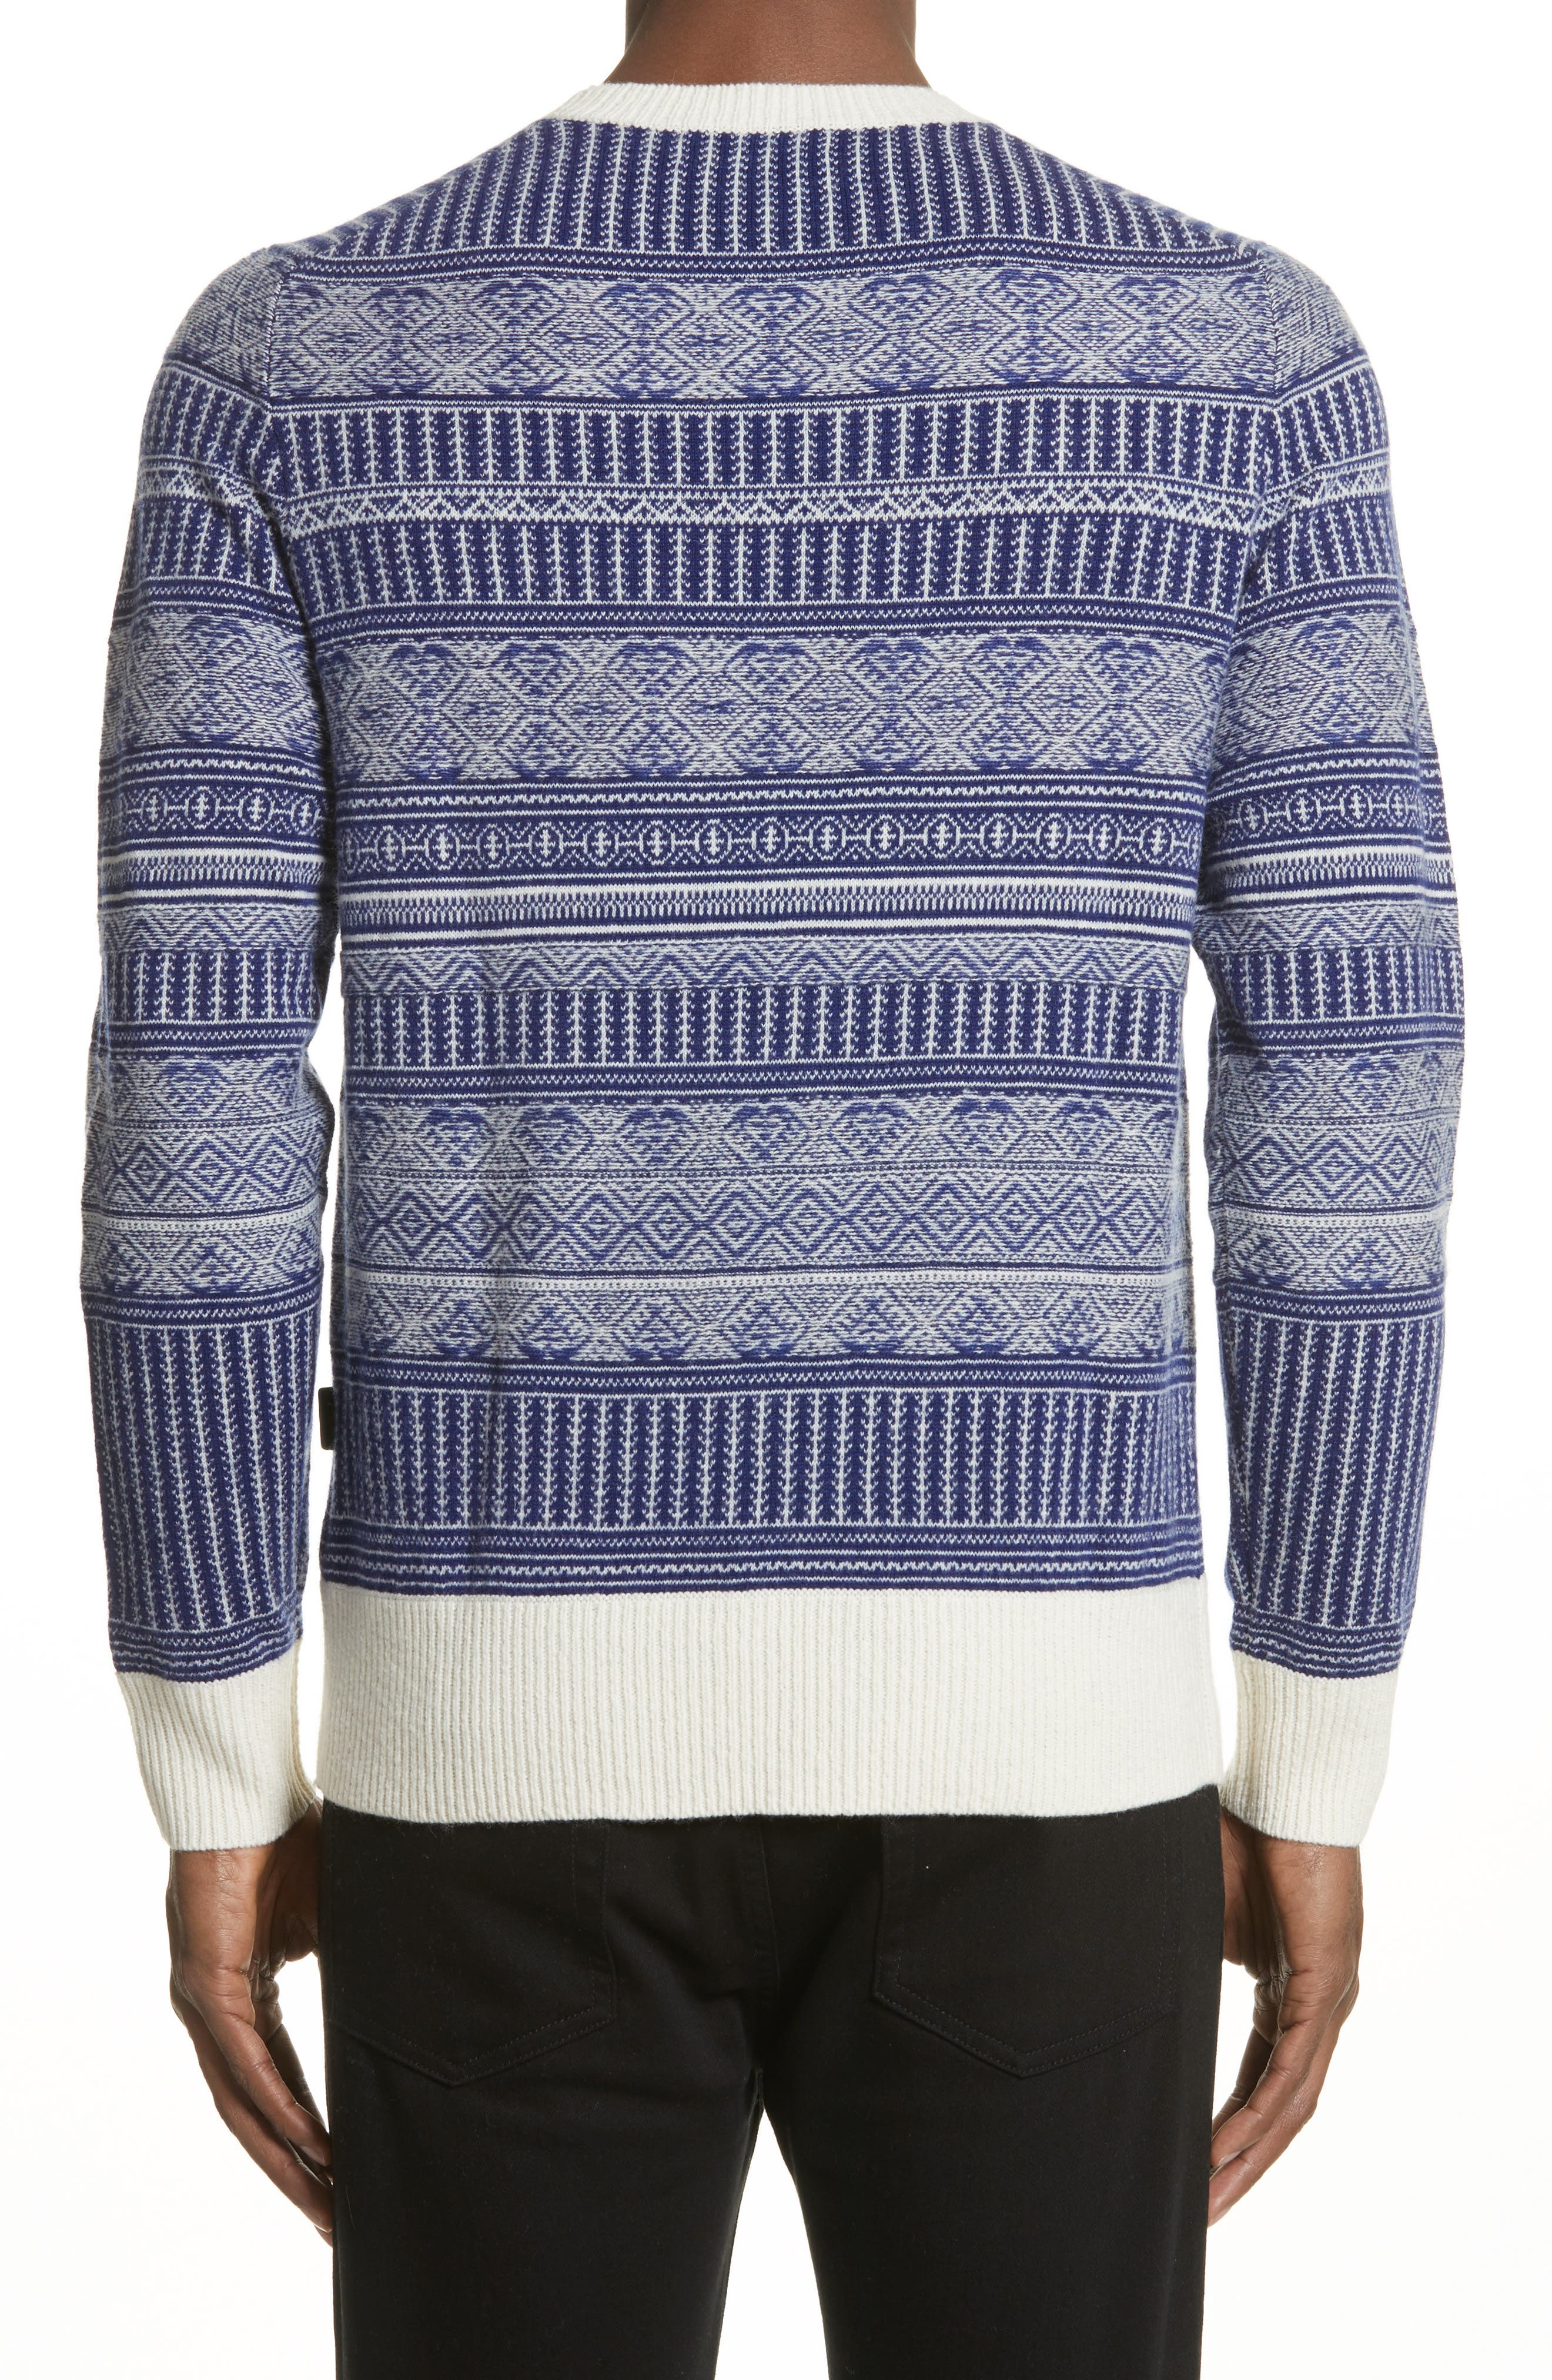 Tredway Wool & Cashmere Sweater,                             Alternate thumbnail 2, color,                             410